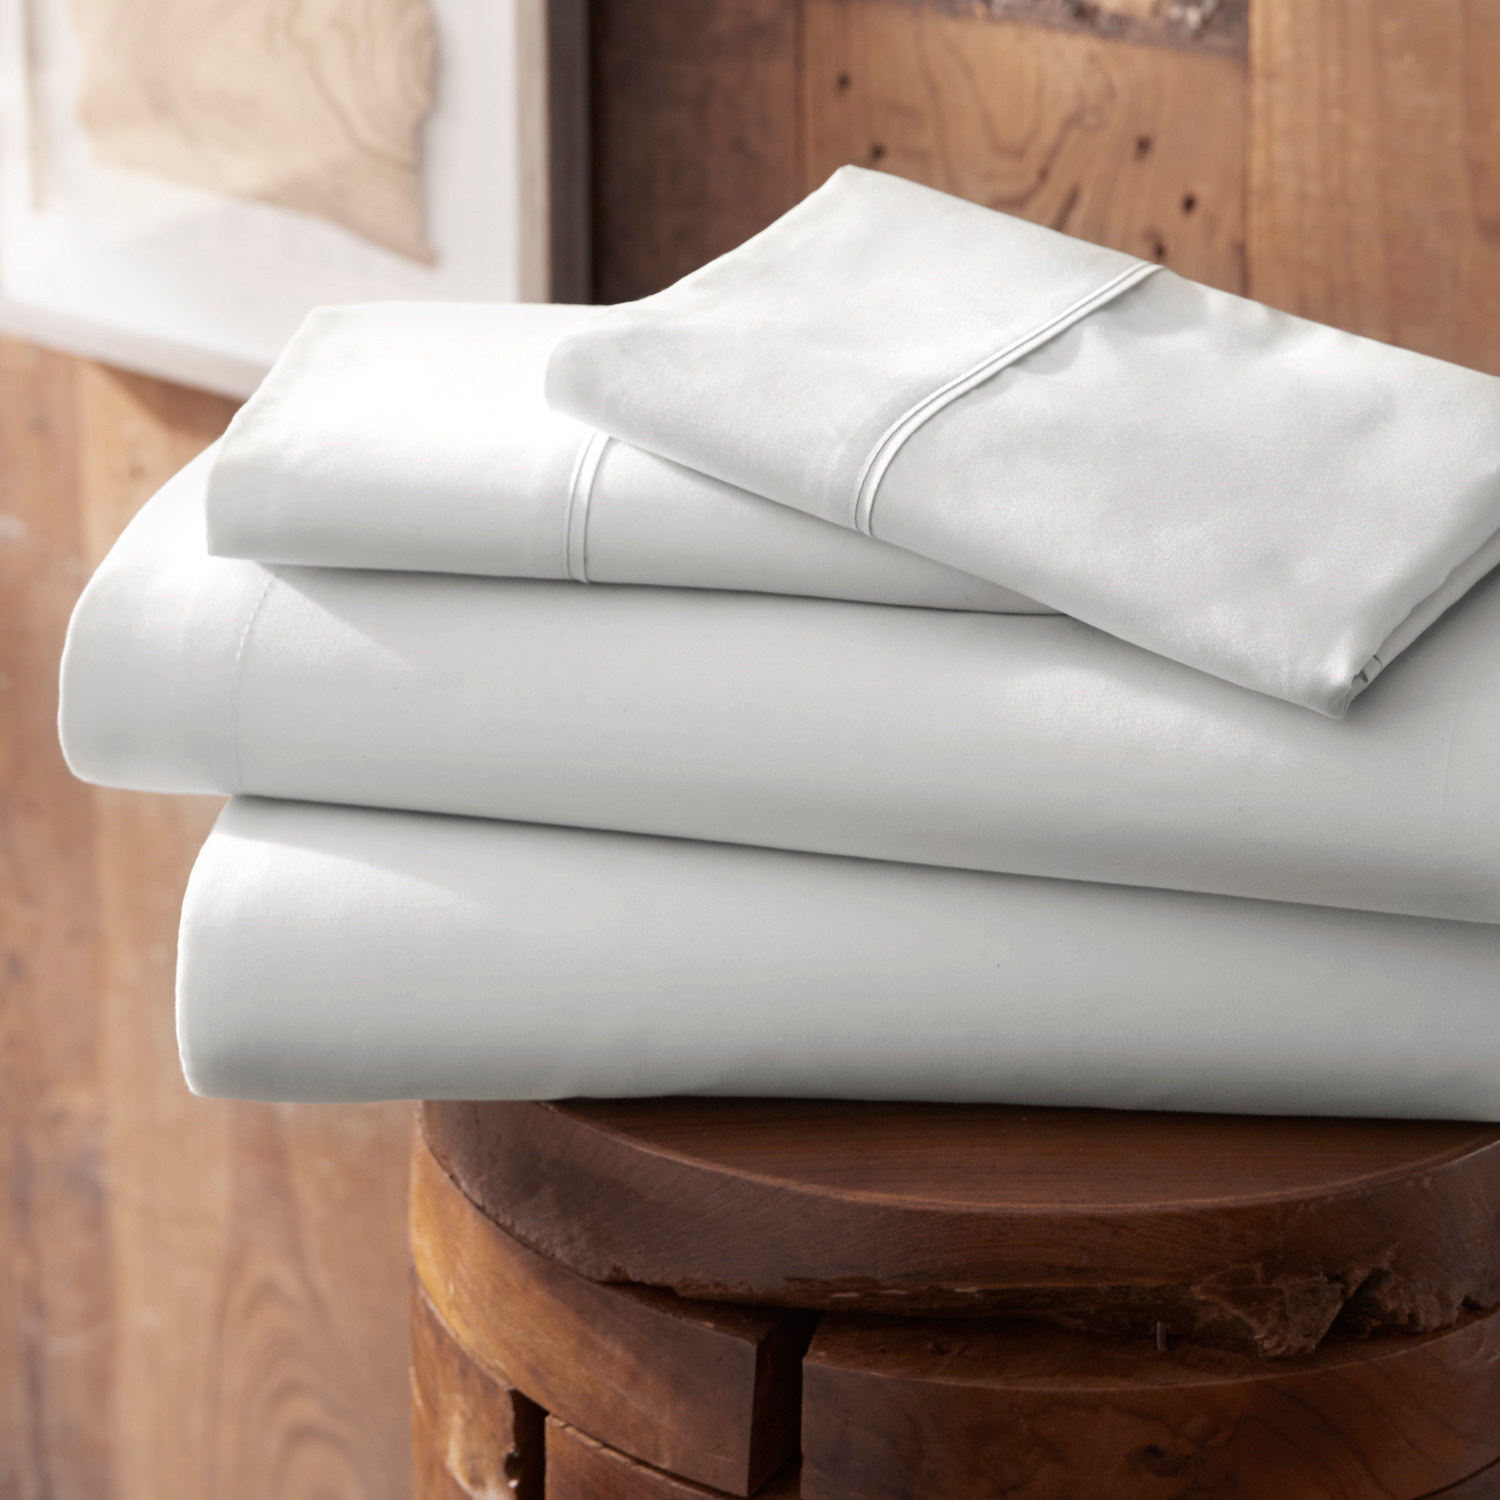 Urban Loft™ Premium Ultra Soft Bed Sheets // 4 Piece Set // White